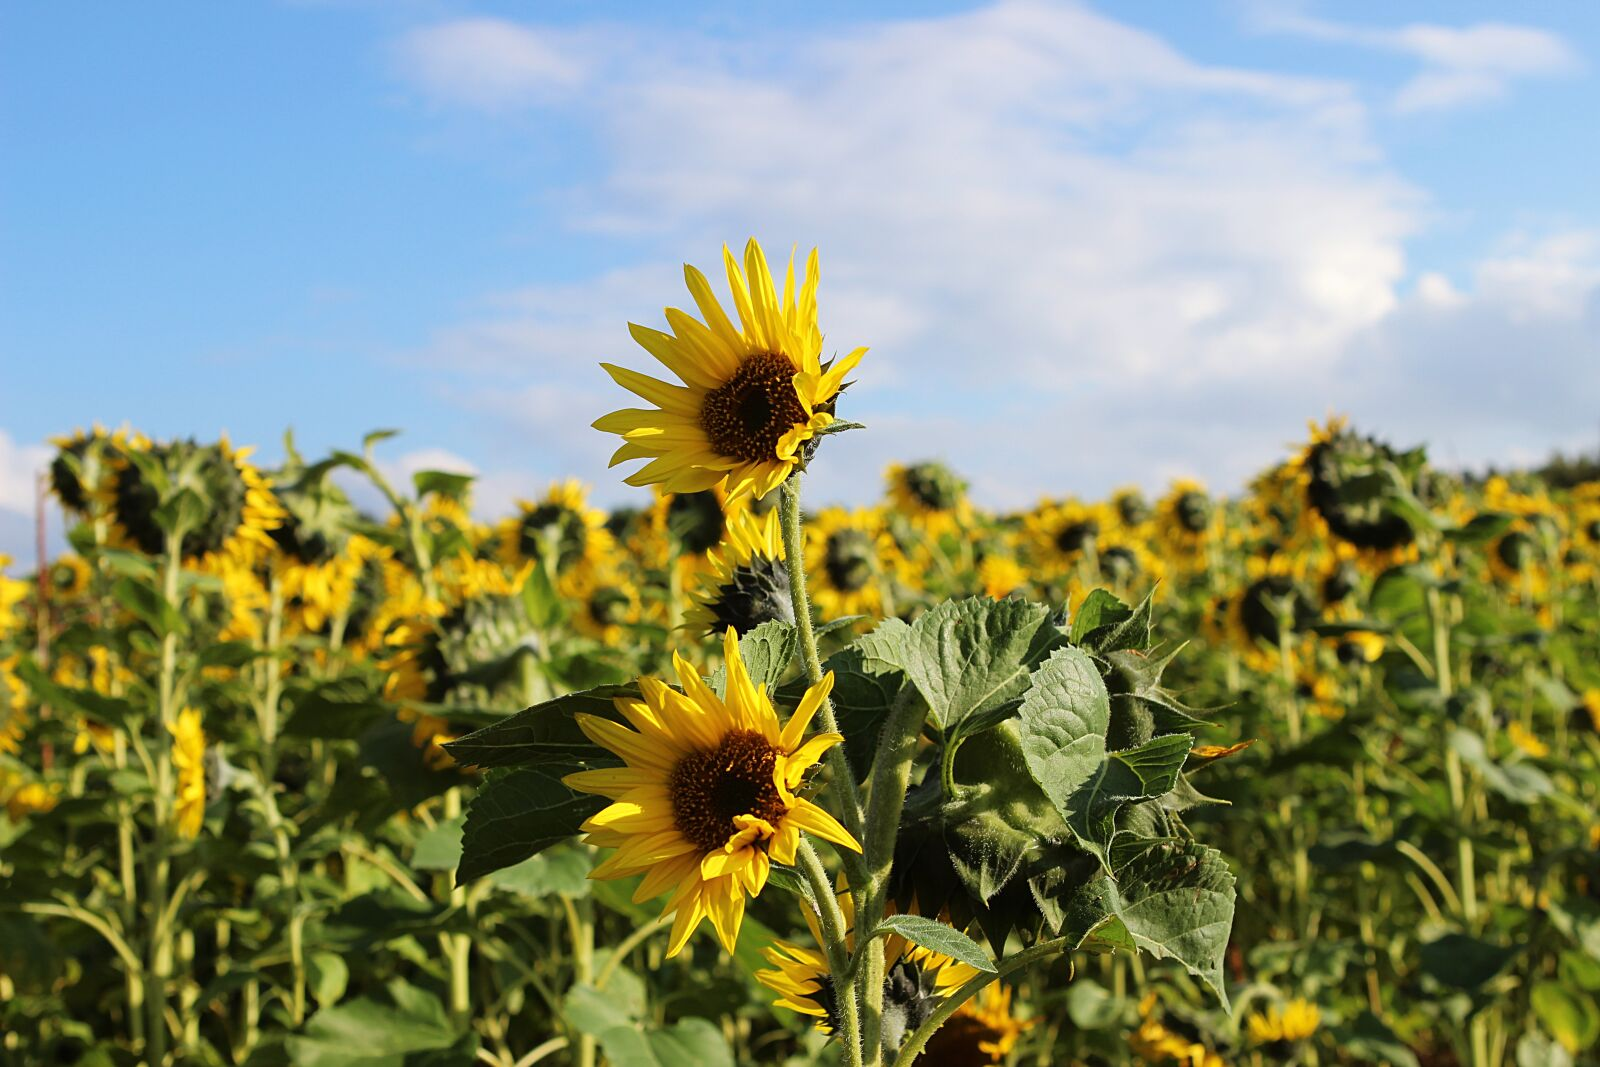 """Canon EOS 600D (Rebel EOS T3i / EOS Kiss X5) sample photo. """"Sunflower, yellow, flower"""" photography"""